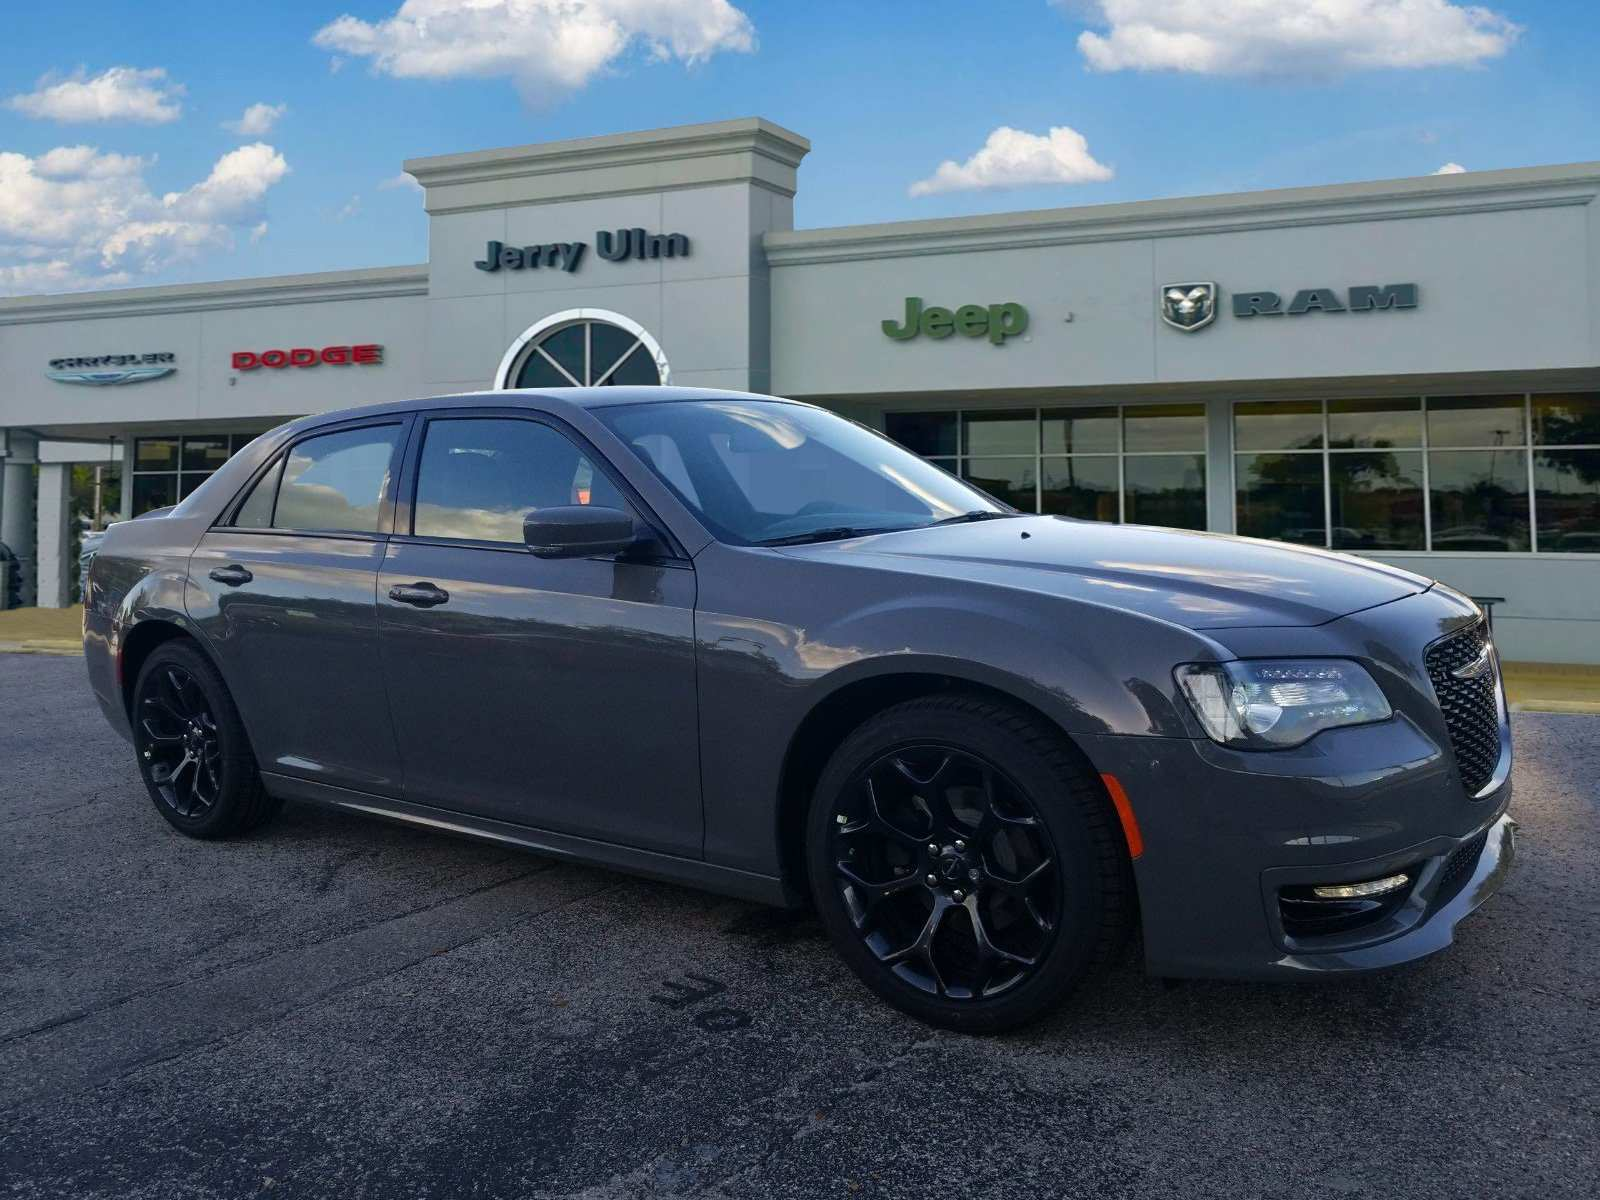 87 Gallery of 2019 Chrysler 300 Pics Images by 2019 Chrysler 300 Pics